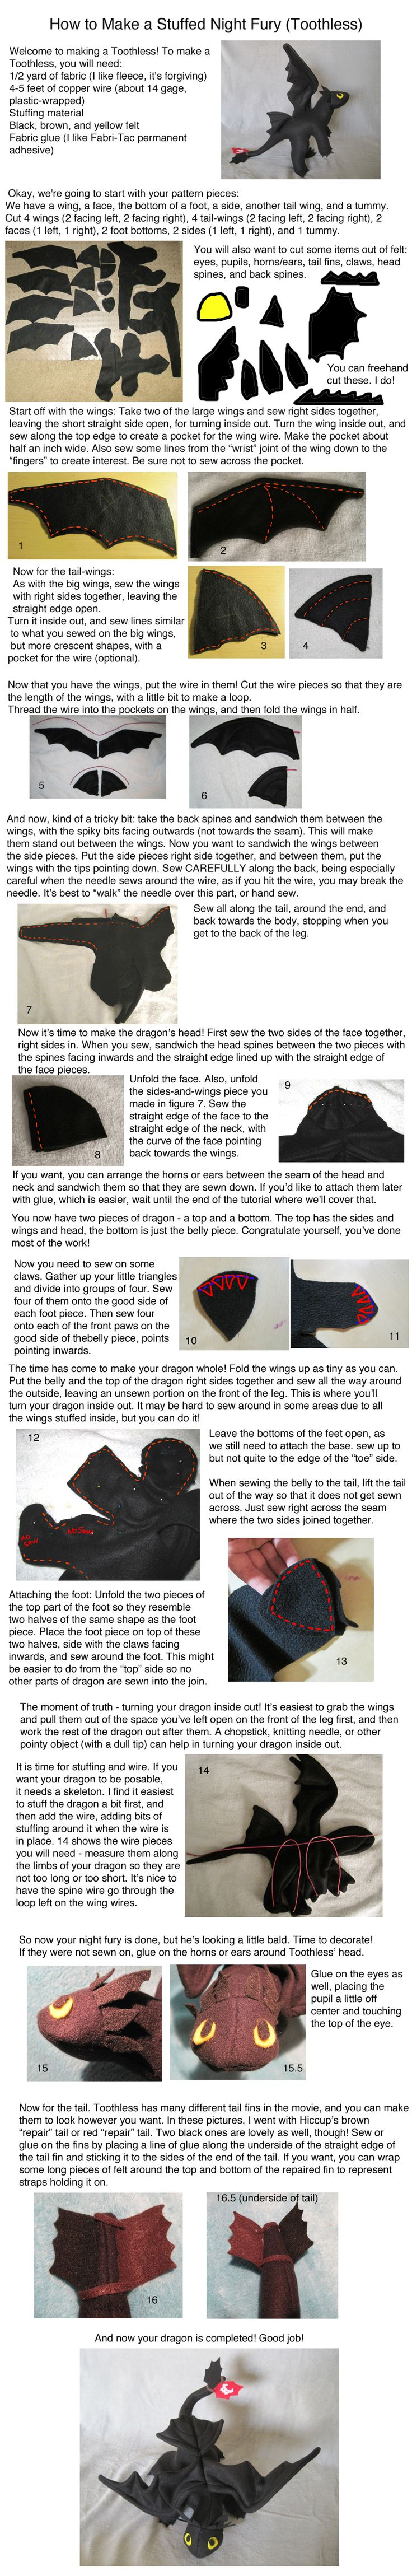 best ideas about toy dragon red dragon film how to make a stuffed toothless dragon from how to train your dragon catharine